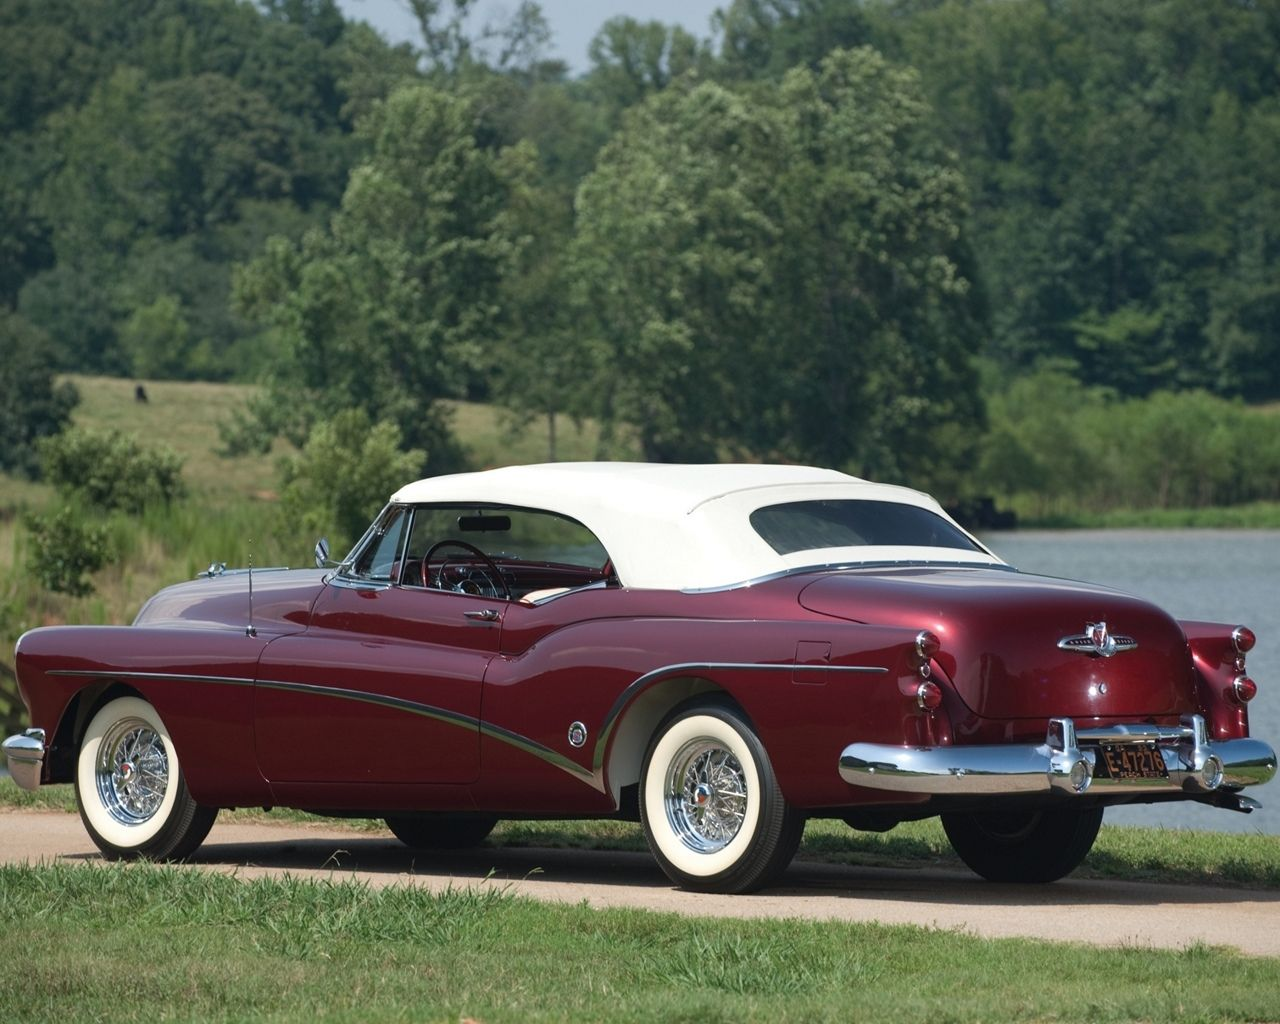 images of images of classical cars | American Classic Cars ...